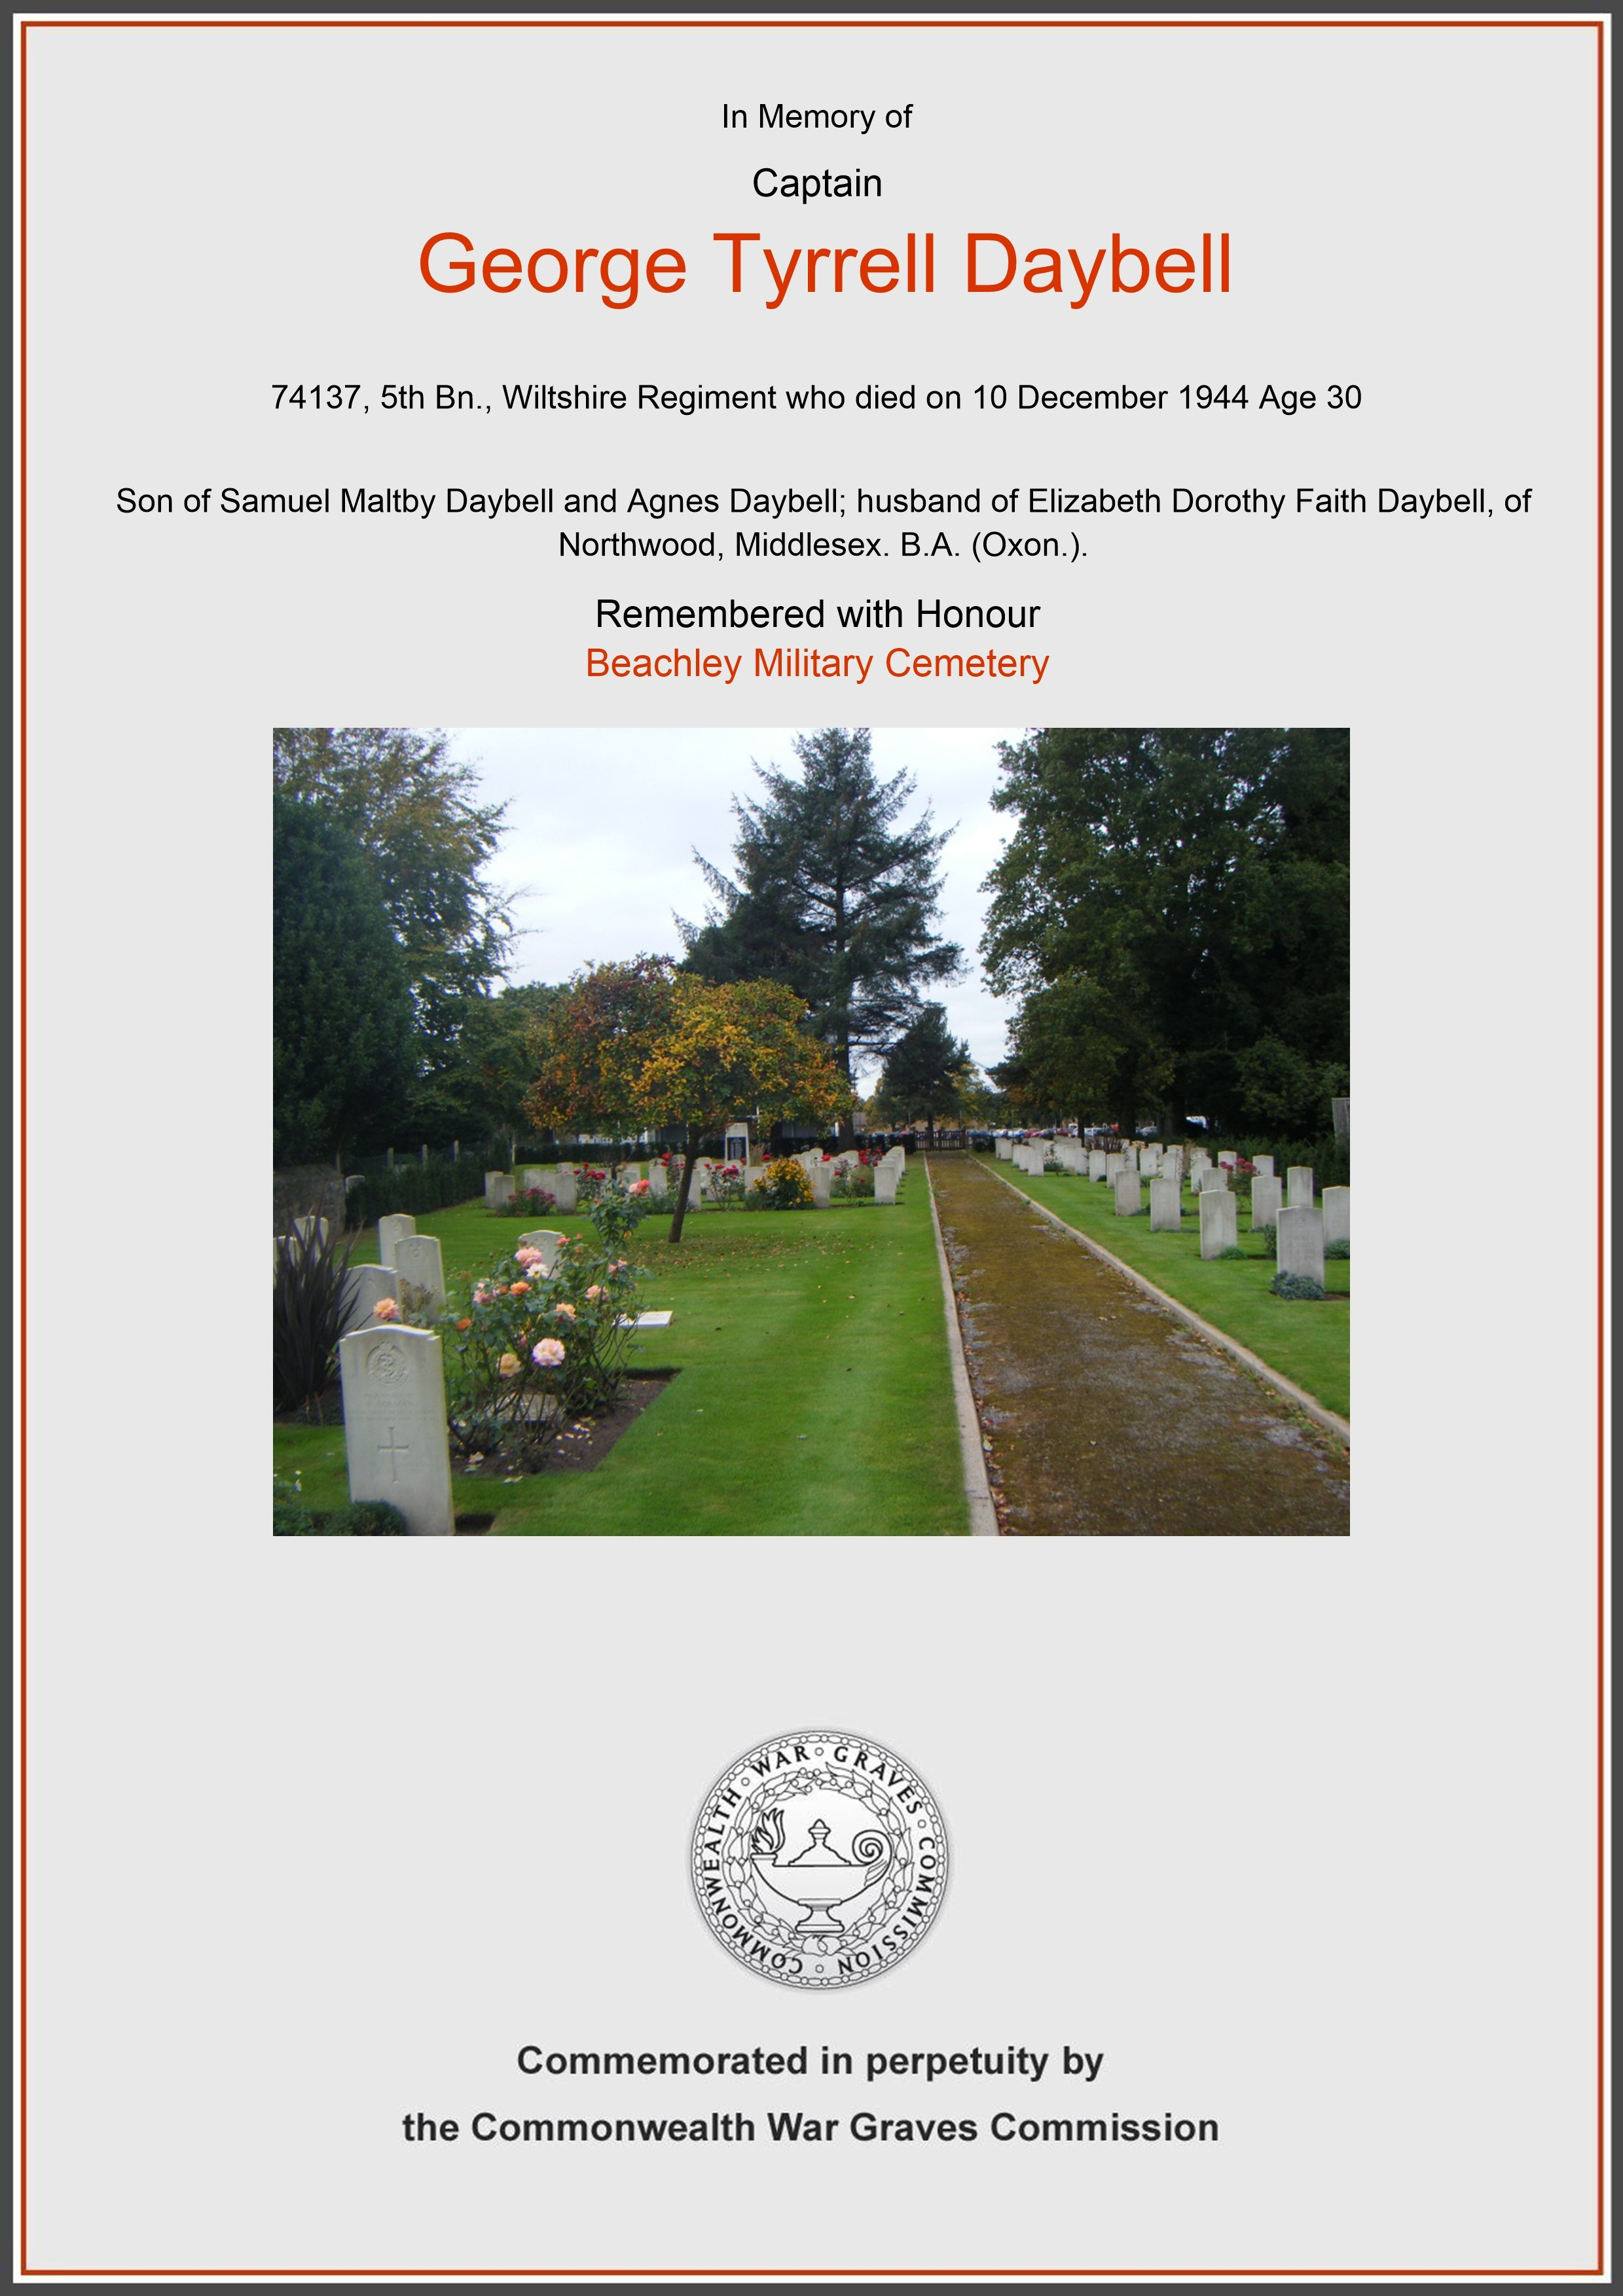 Daybell, George Tyrrell, Beachley Military Cemetery (Certificate) Ref